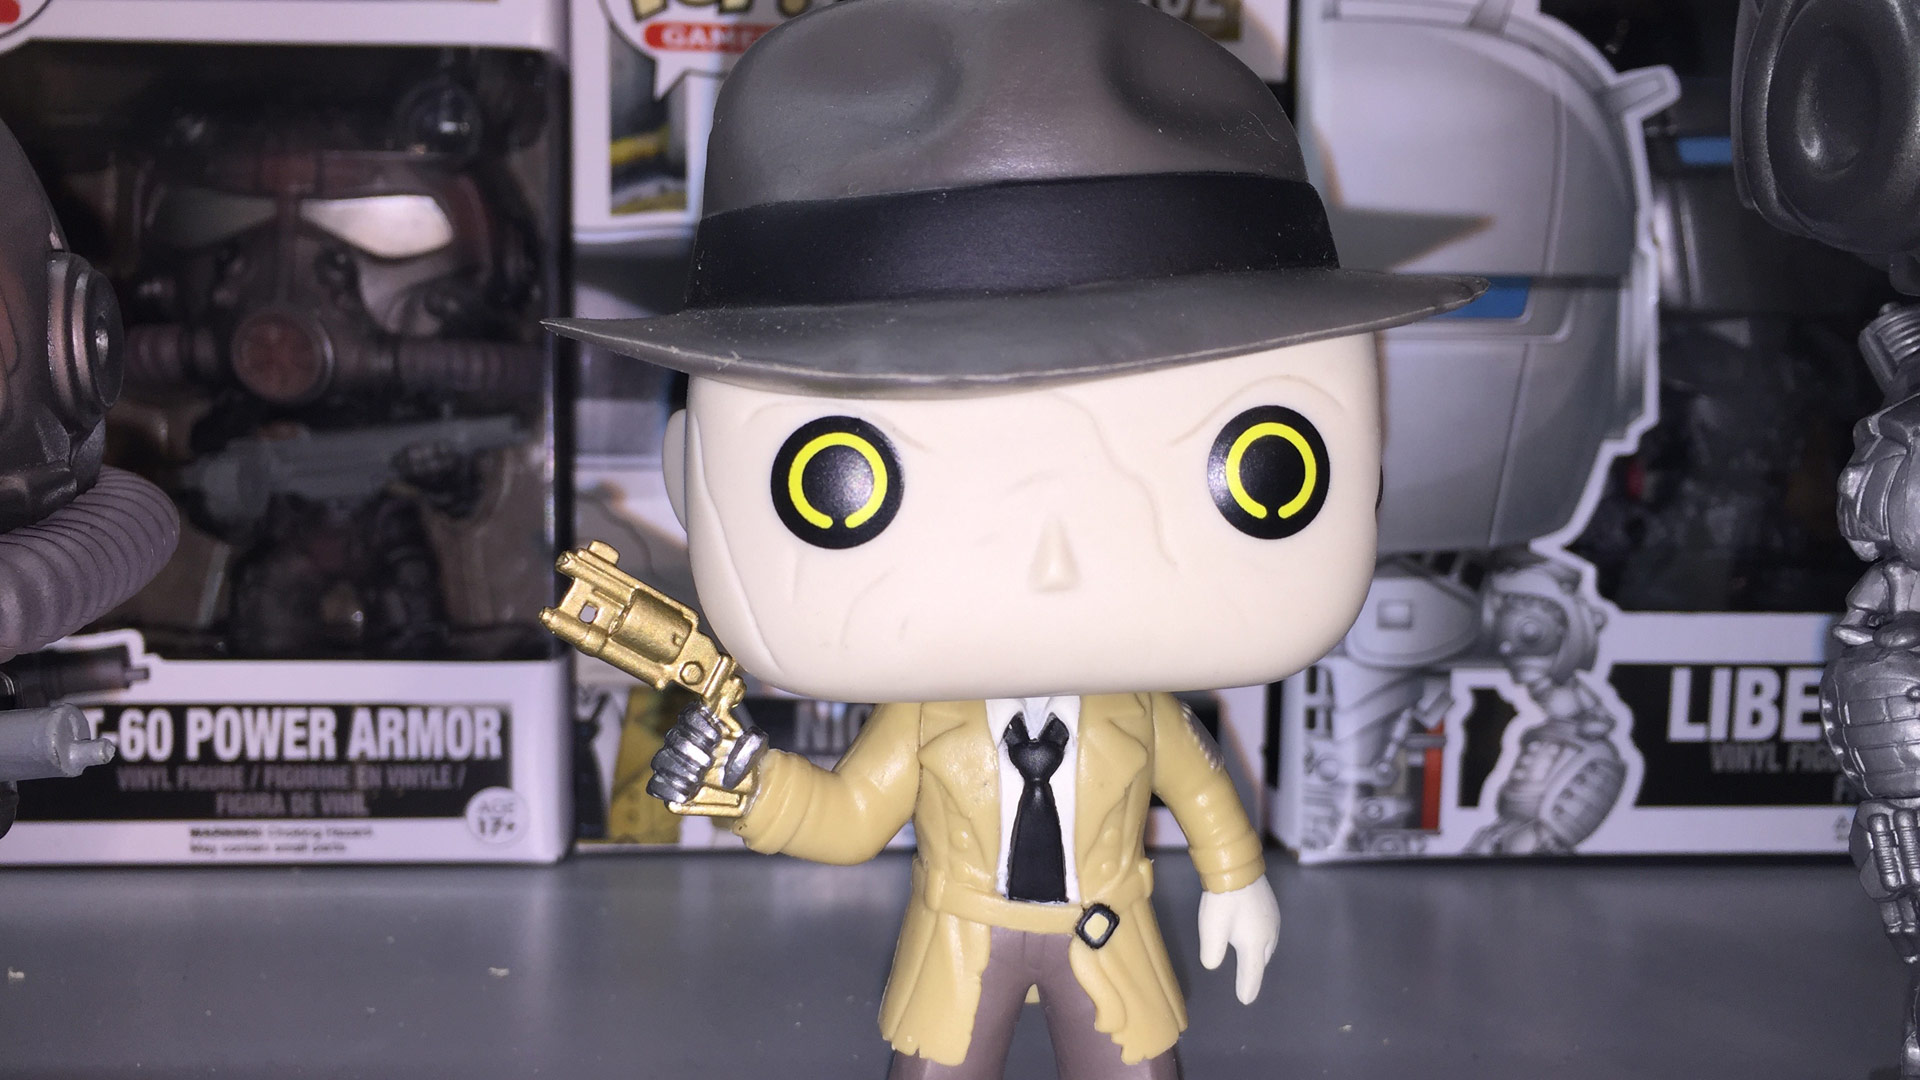 Funko Pop Fallout 4 Nick Valentine #162 Vinyl Figure at Toy Fair 2017